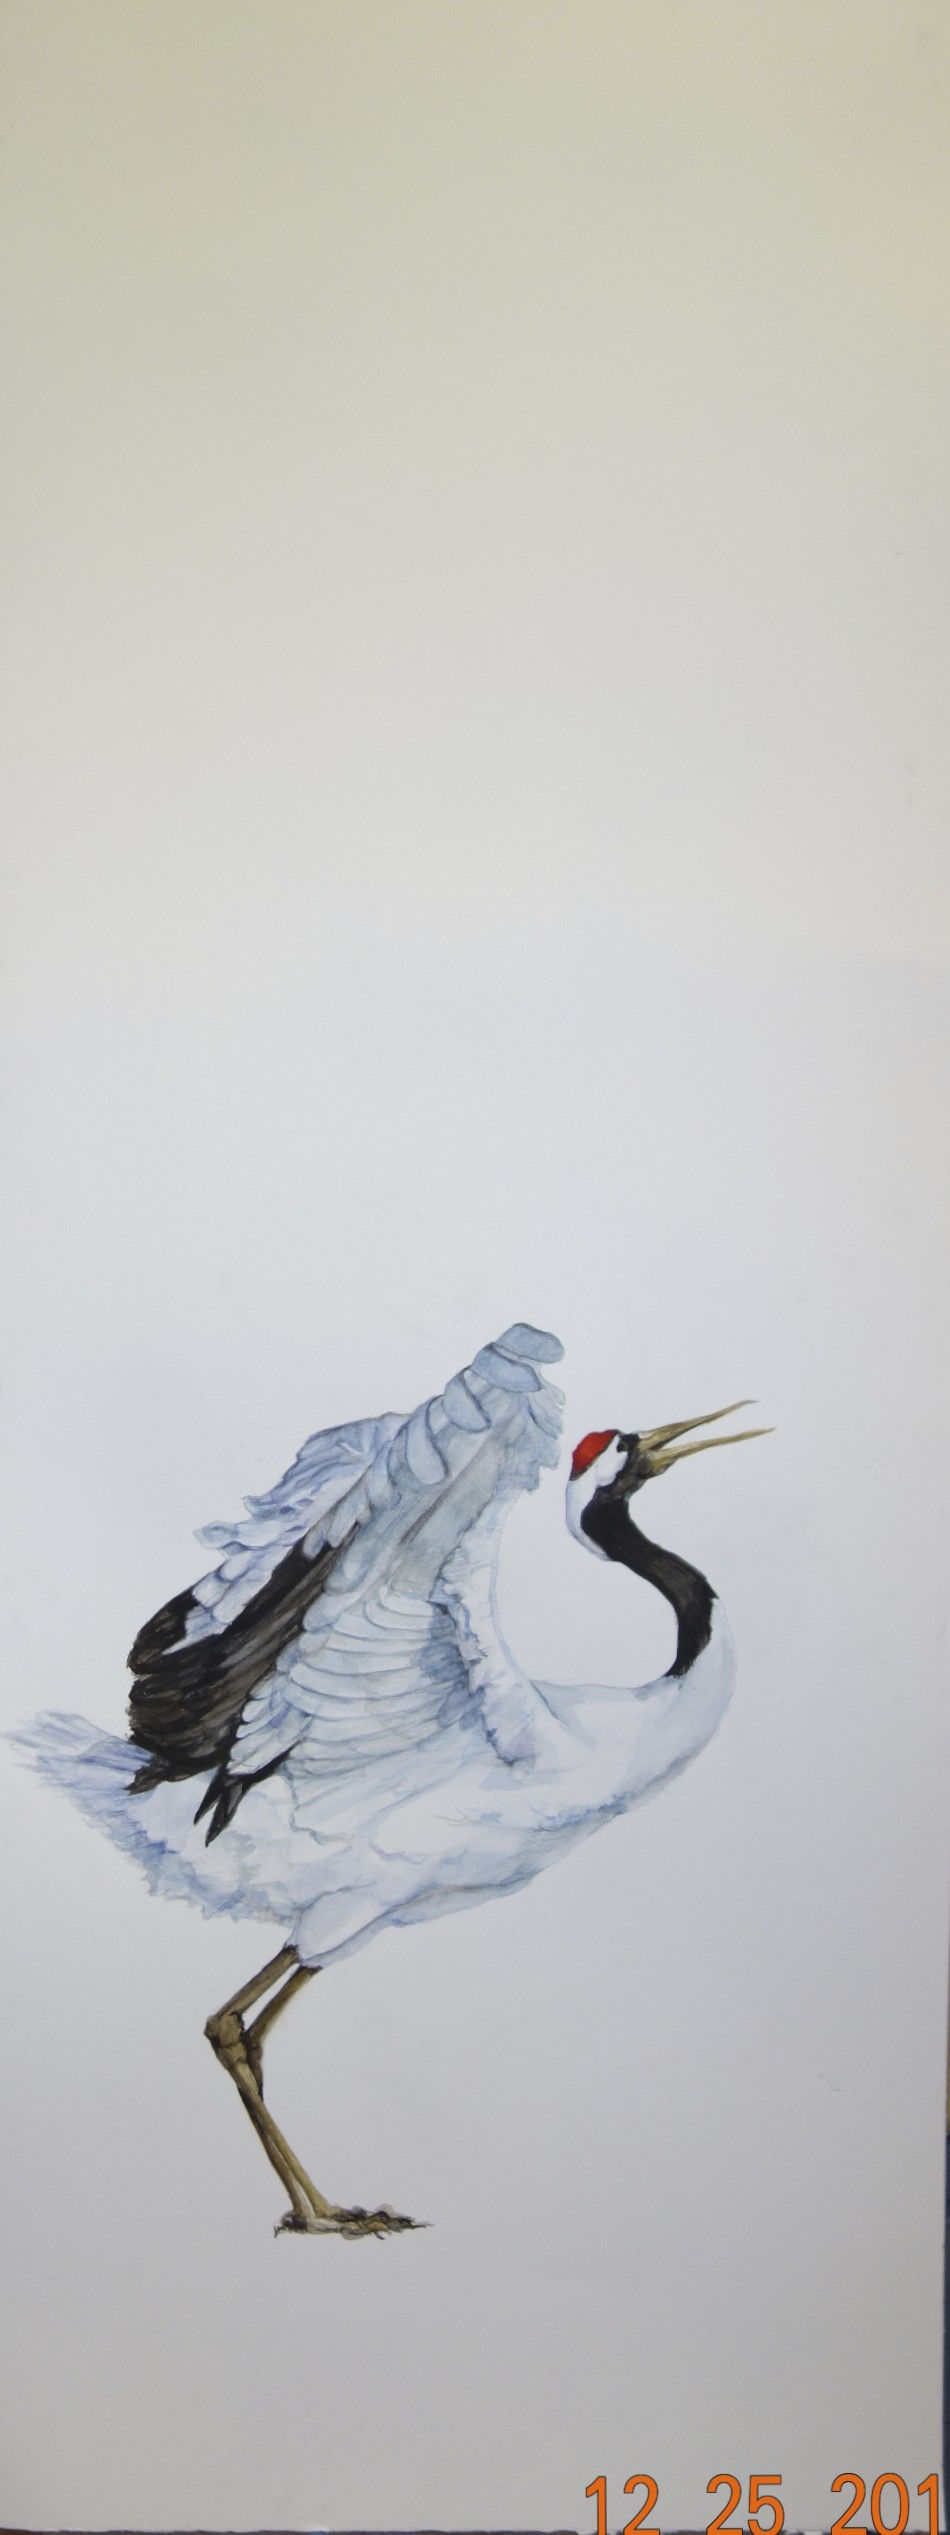 CRANE (no 1 of Triptych)